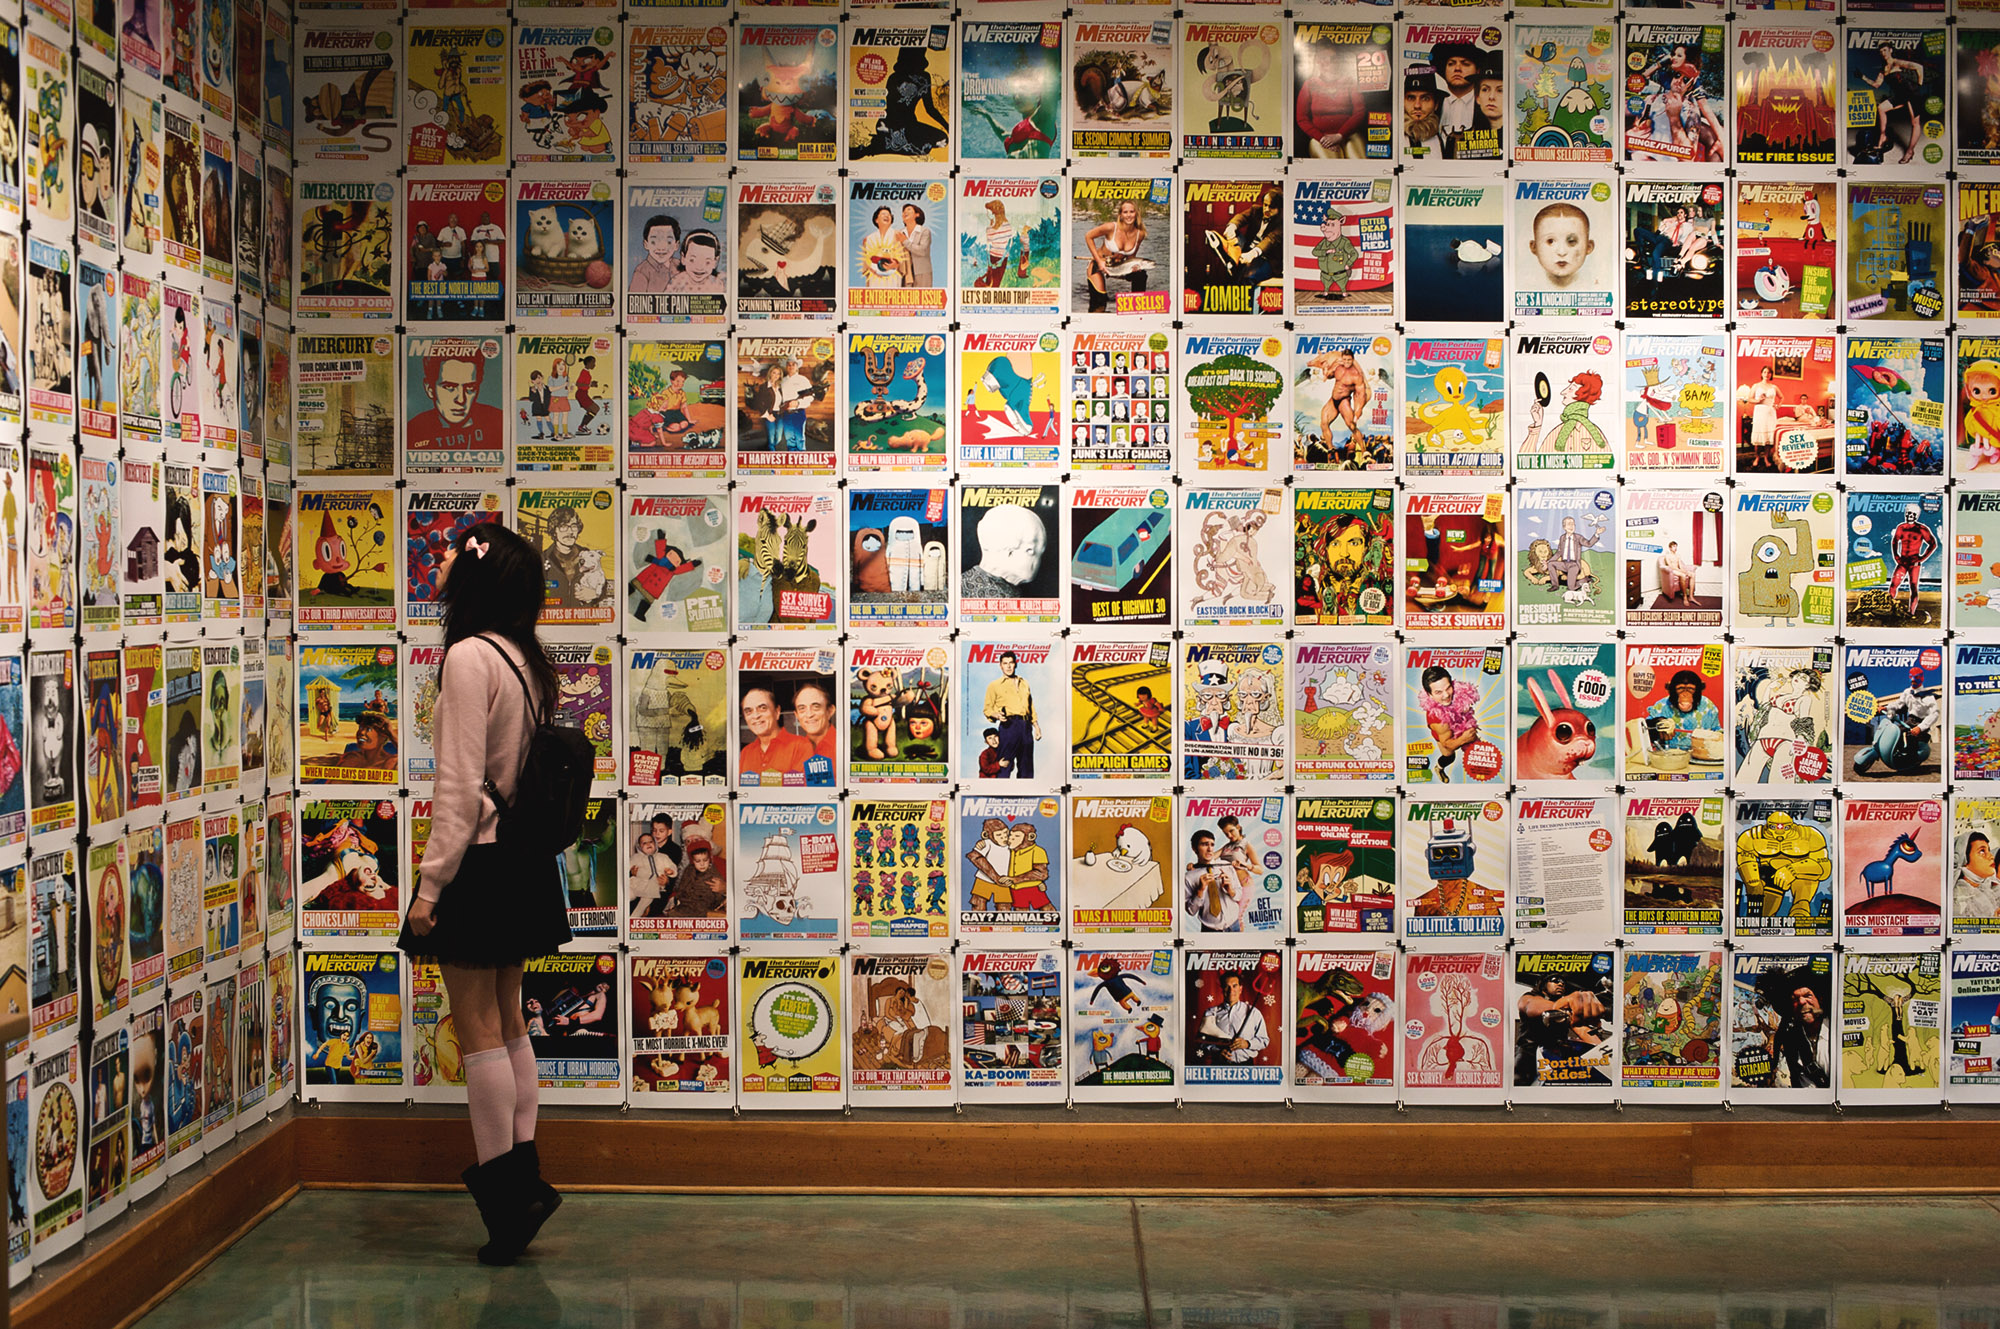 A girl peering intently at walls plastered with Mercury magazine covers